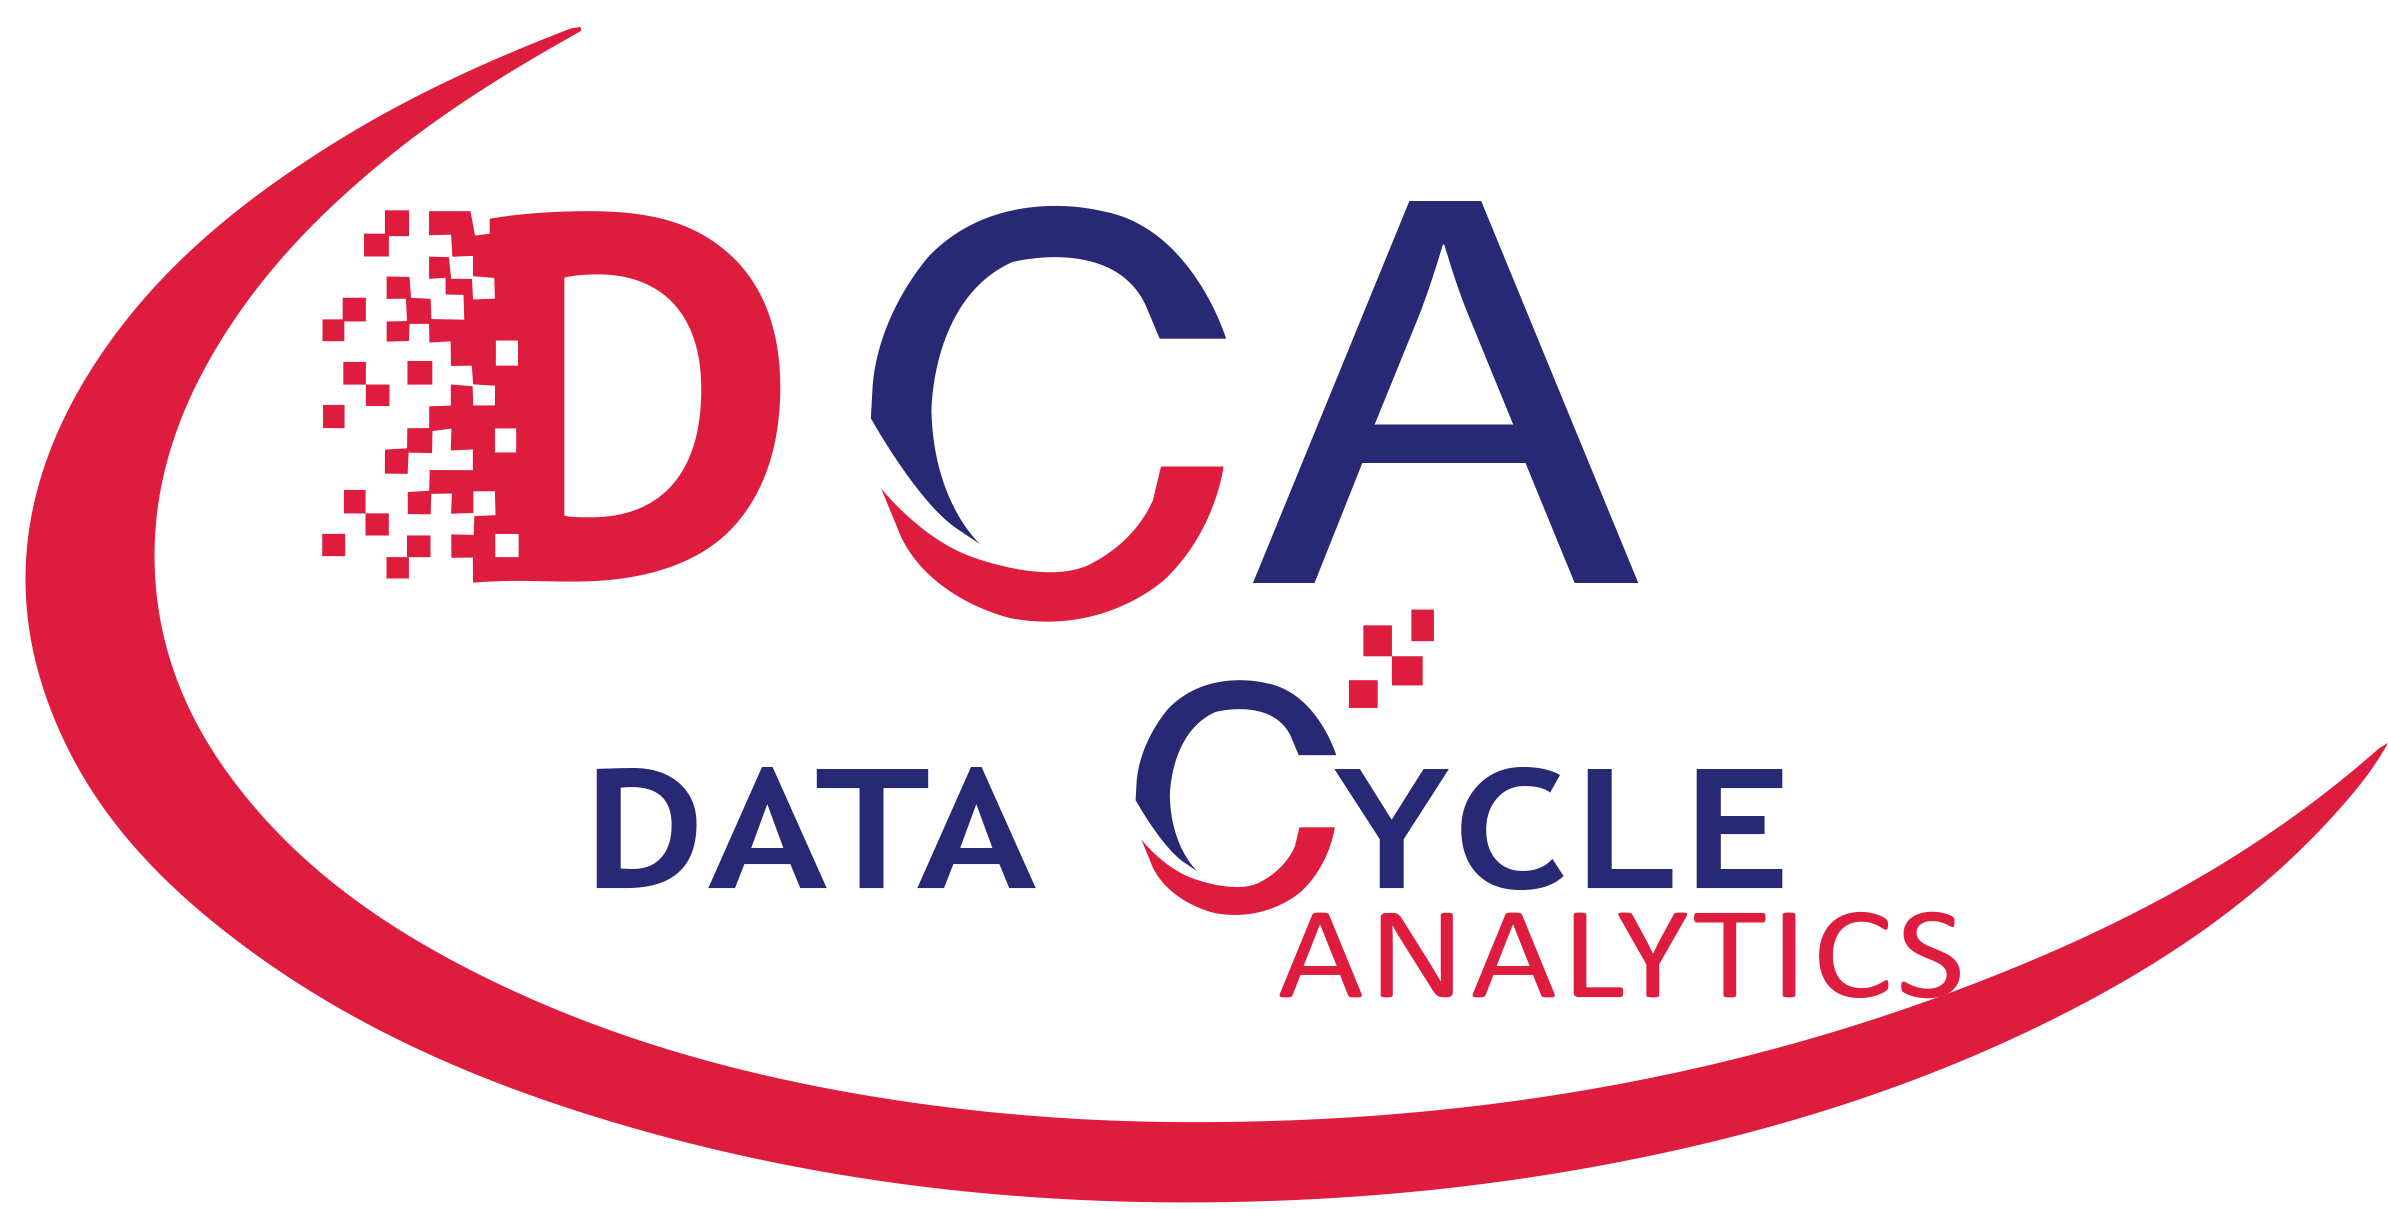 Data Cycle Analytics